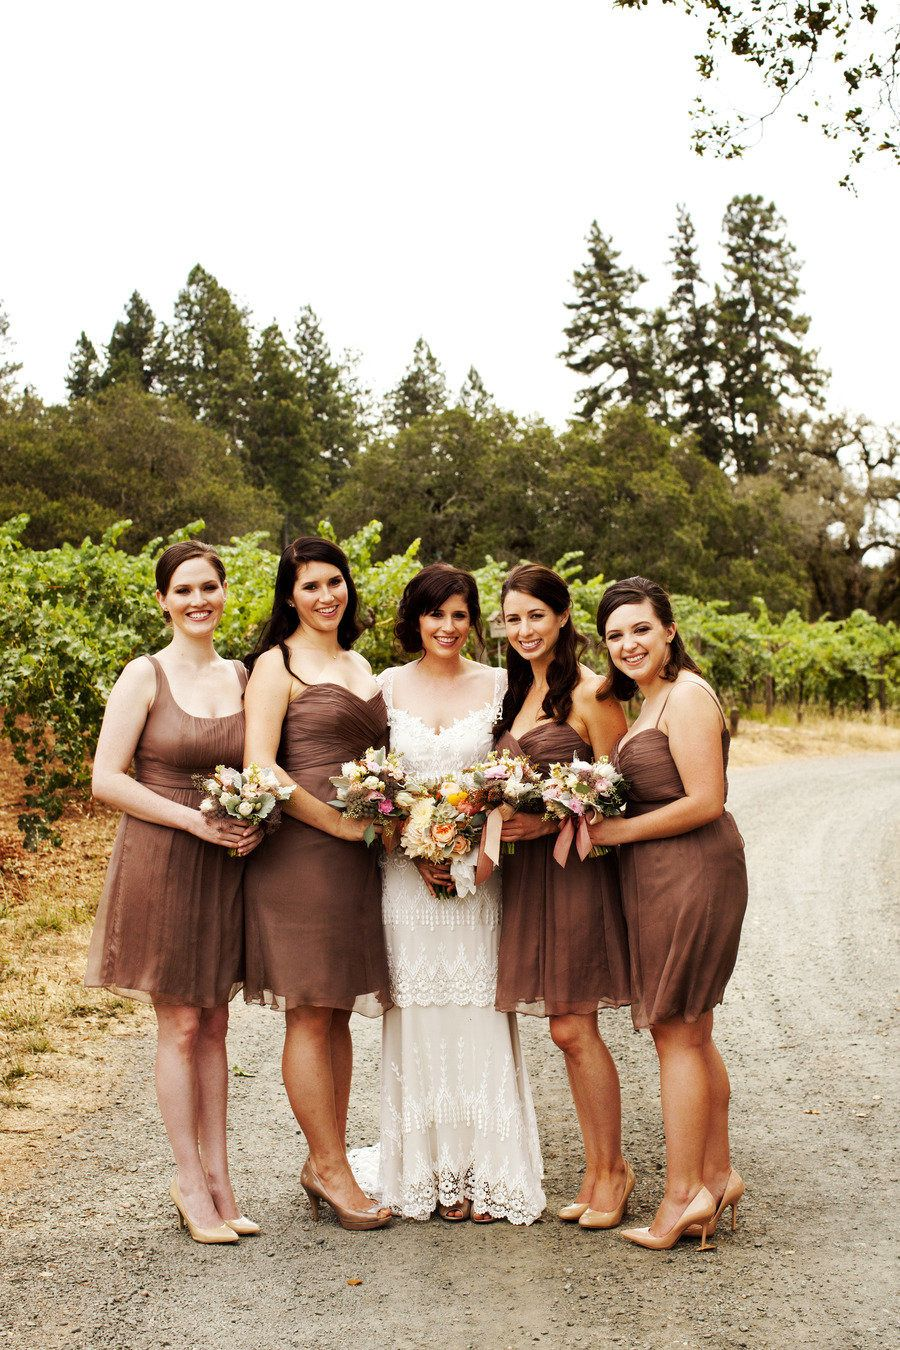 Glen ellen wedding at atwood ranch from andrew weeks